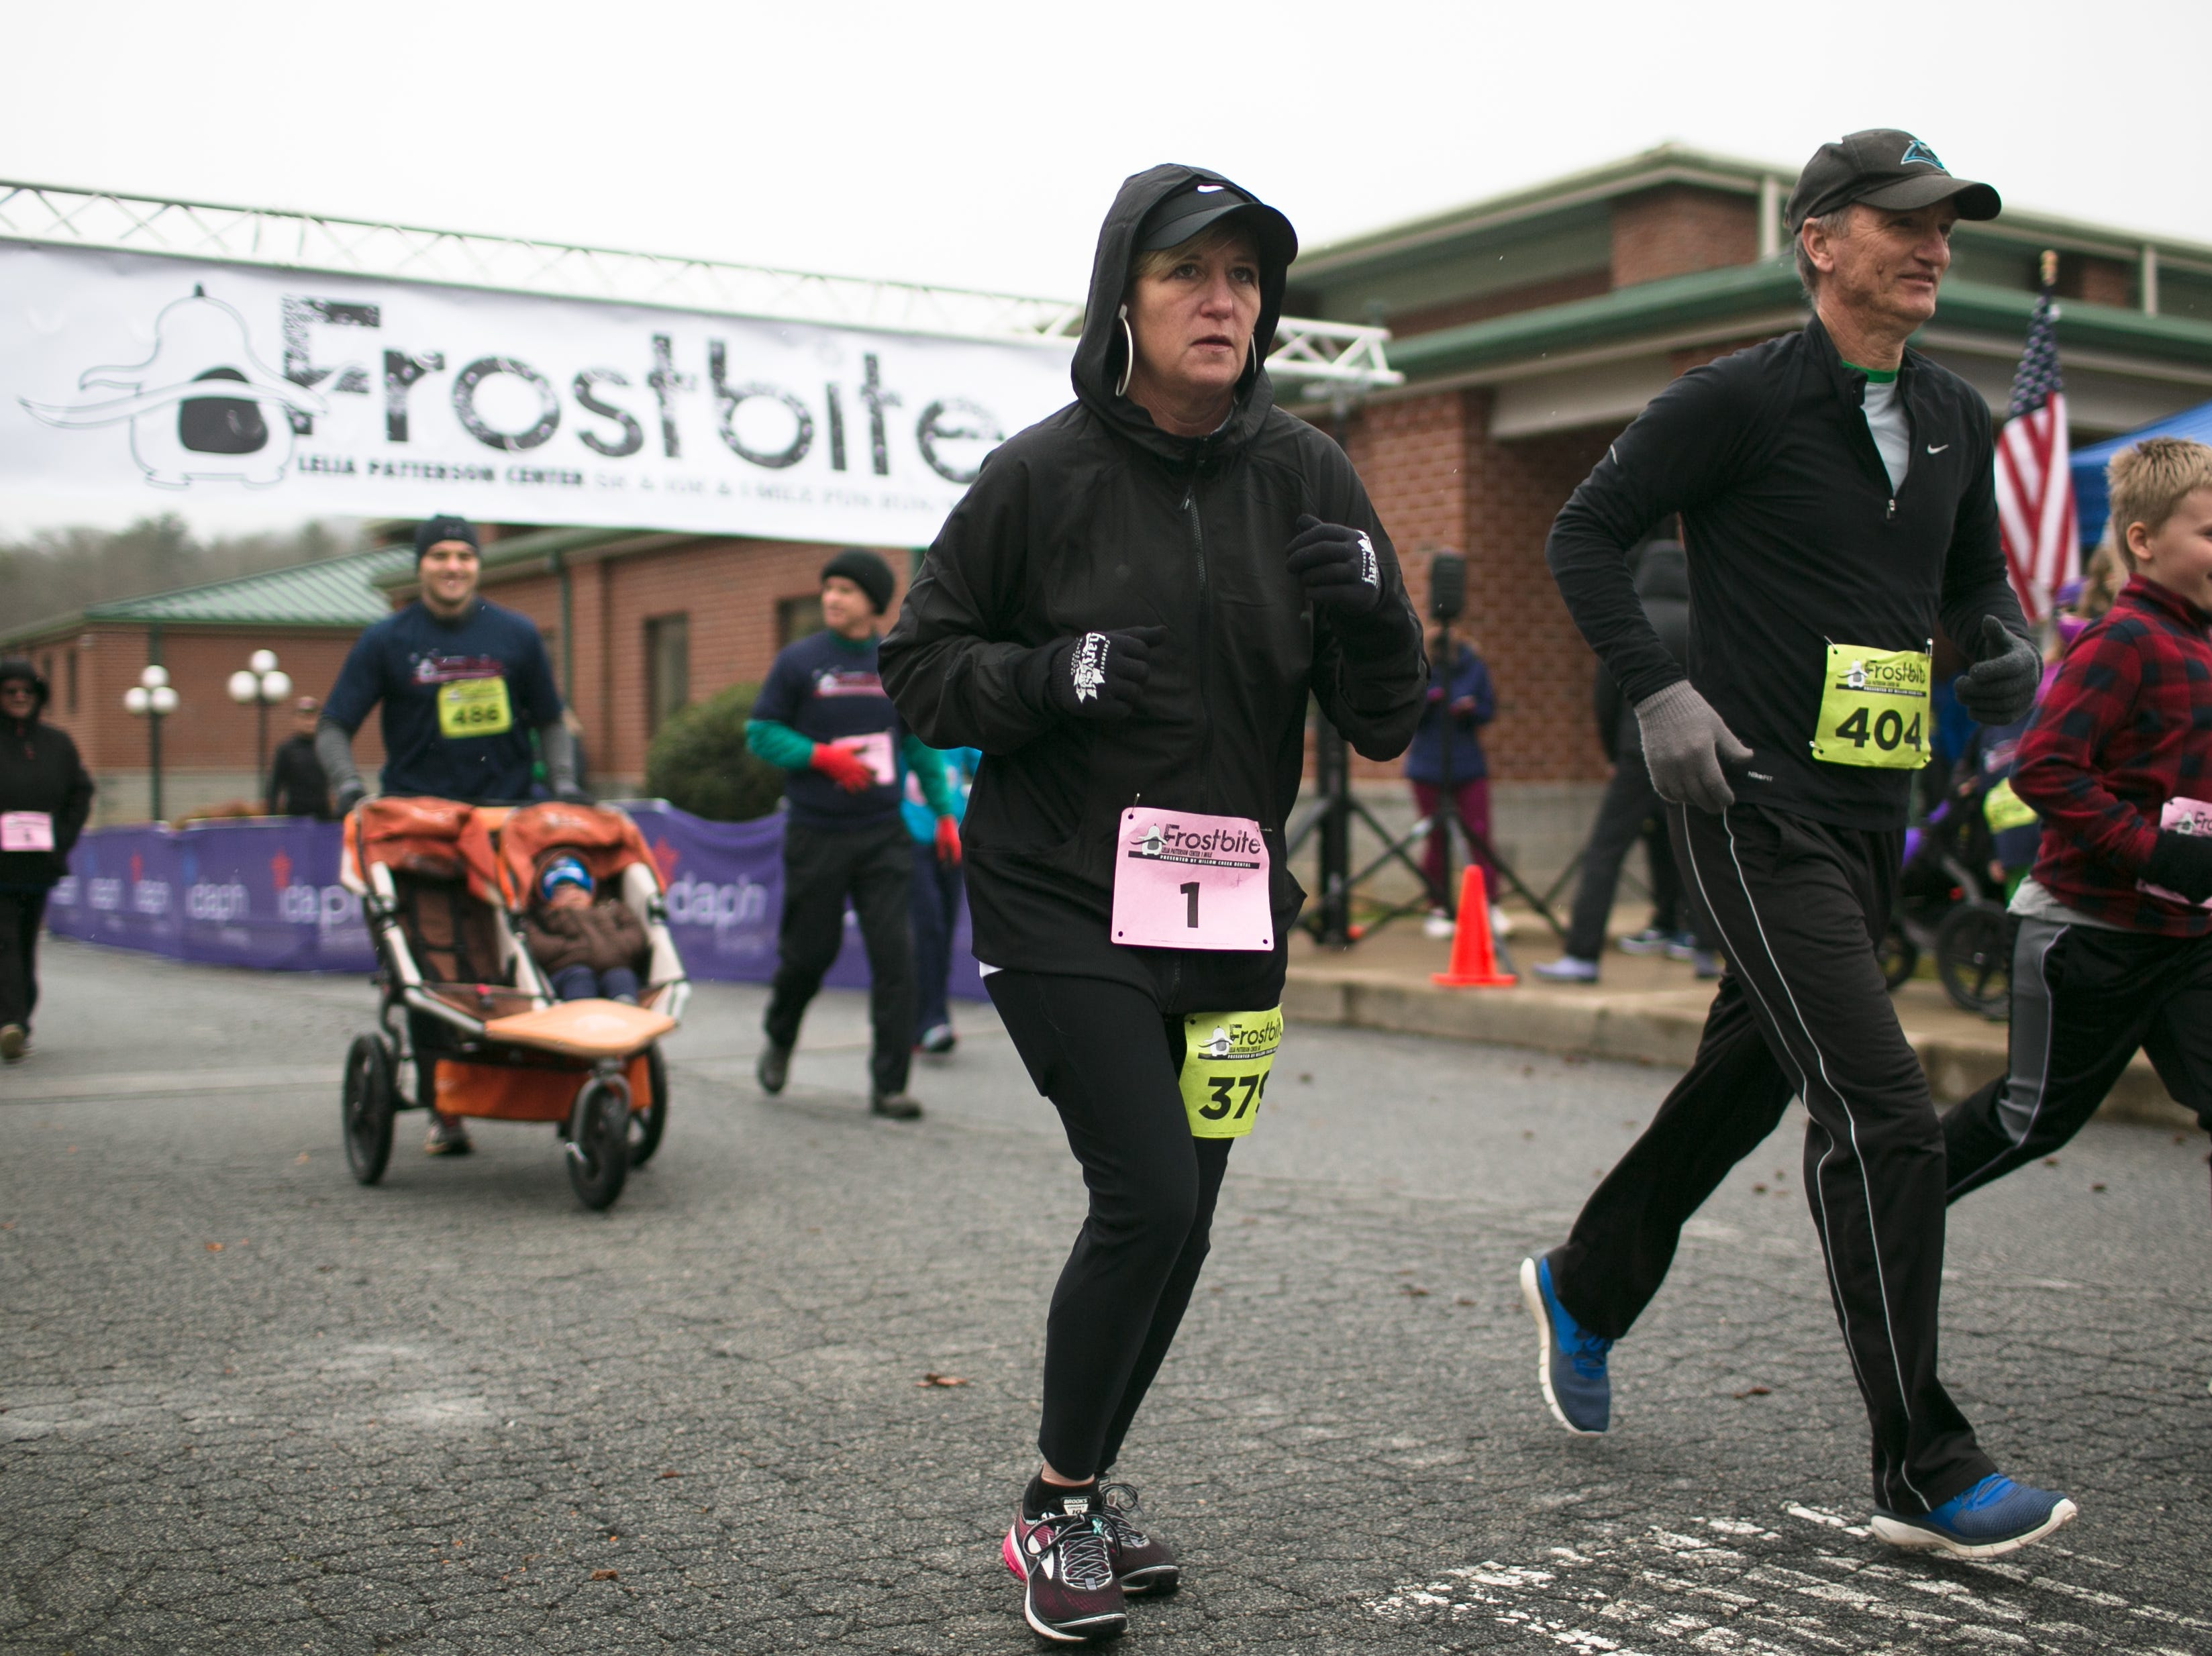 Scenes from the 27th Annual LPC Frostbite Races on Feb. 17, 2019, in Fletcher.